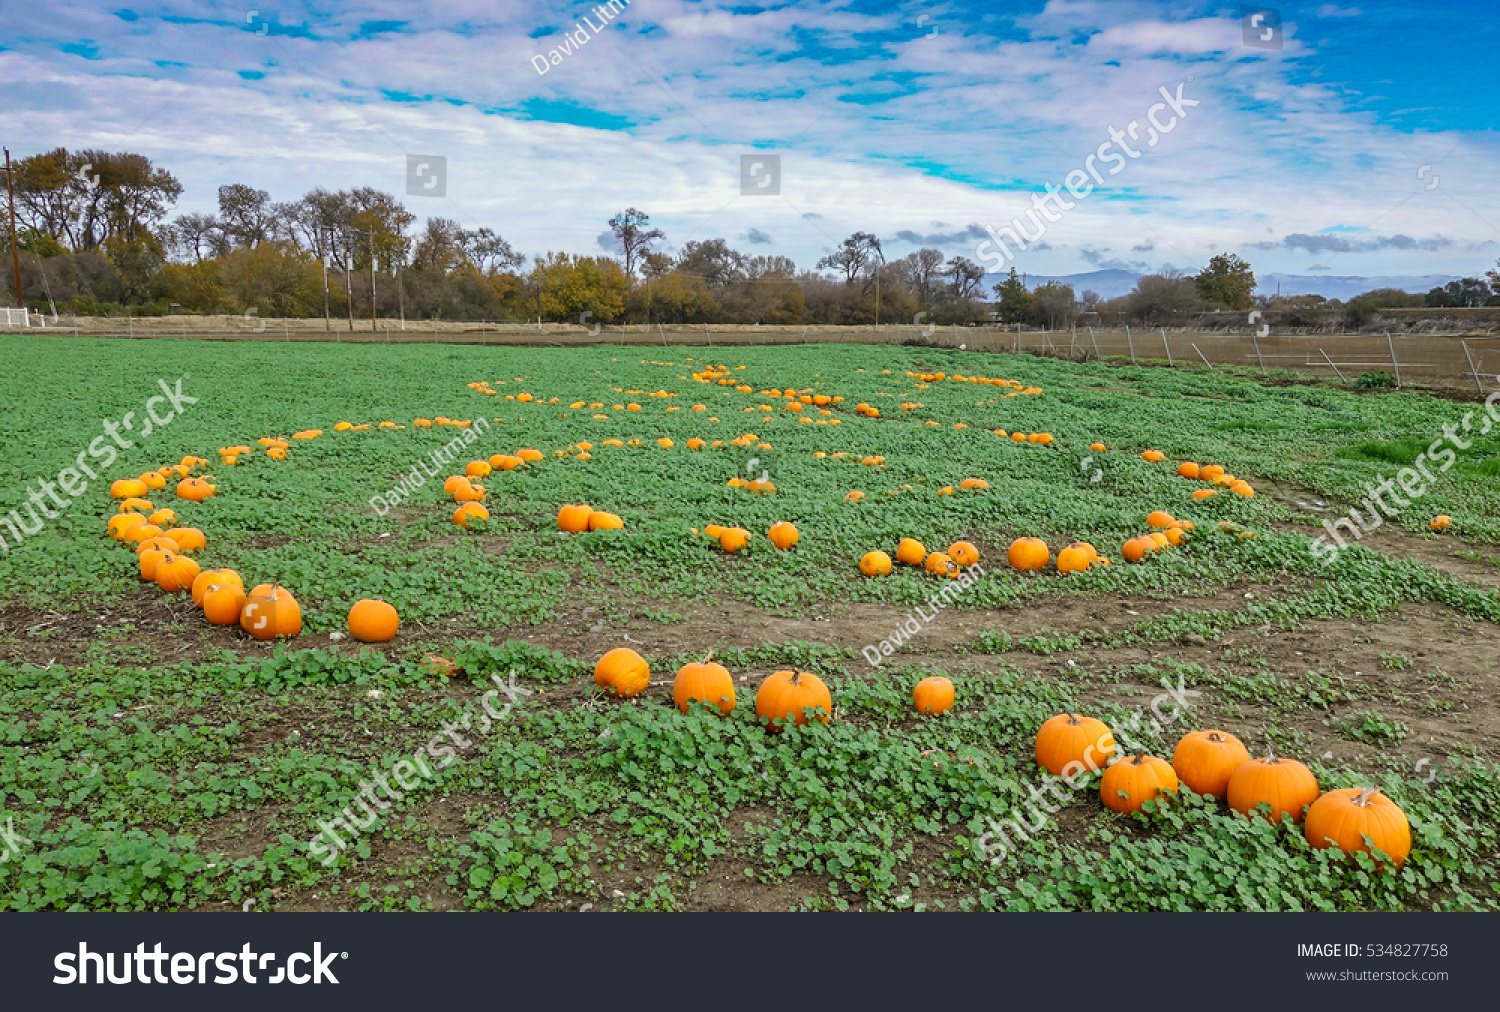 Leftover, unsold pumpkins are arranged in a spiral pattern, as colorful green grass and weeds grow alongside them in a field in the Salinas Valley of Central California.